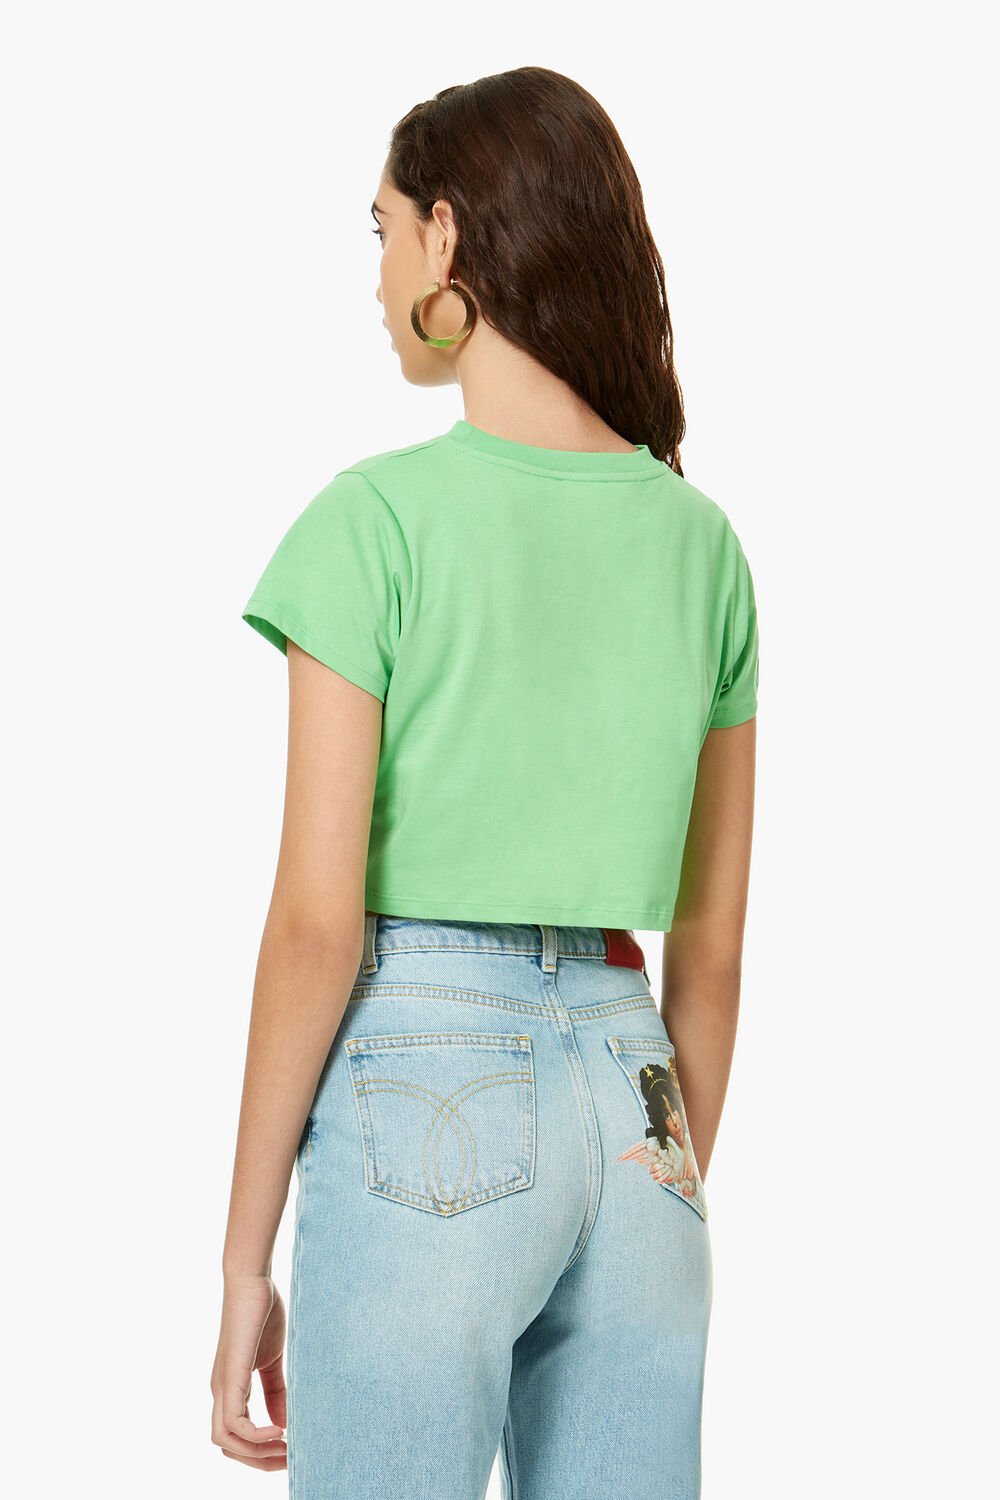 Flying Saucer Crop T-Shirt Green